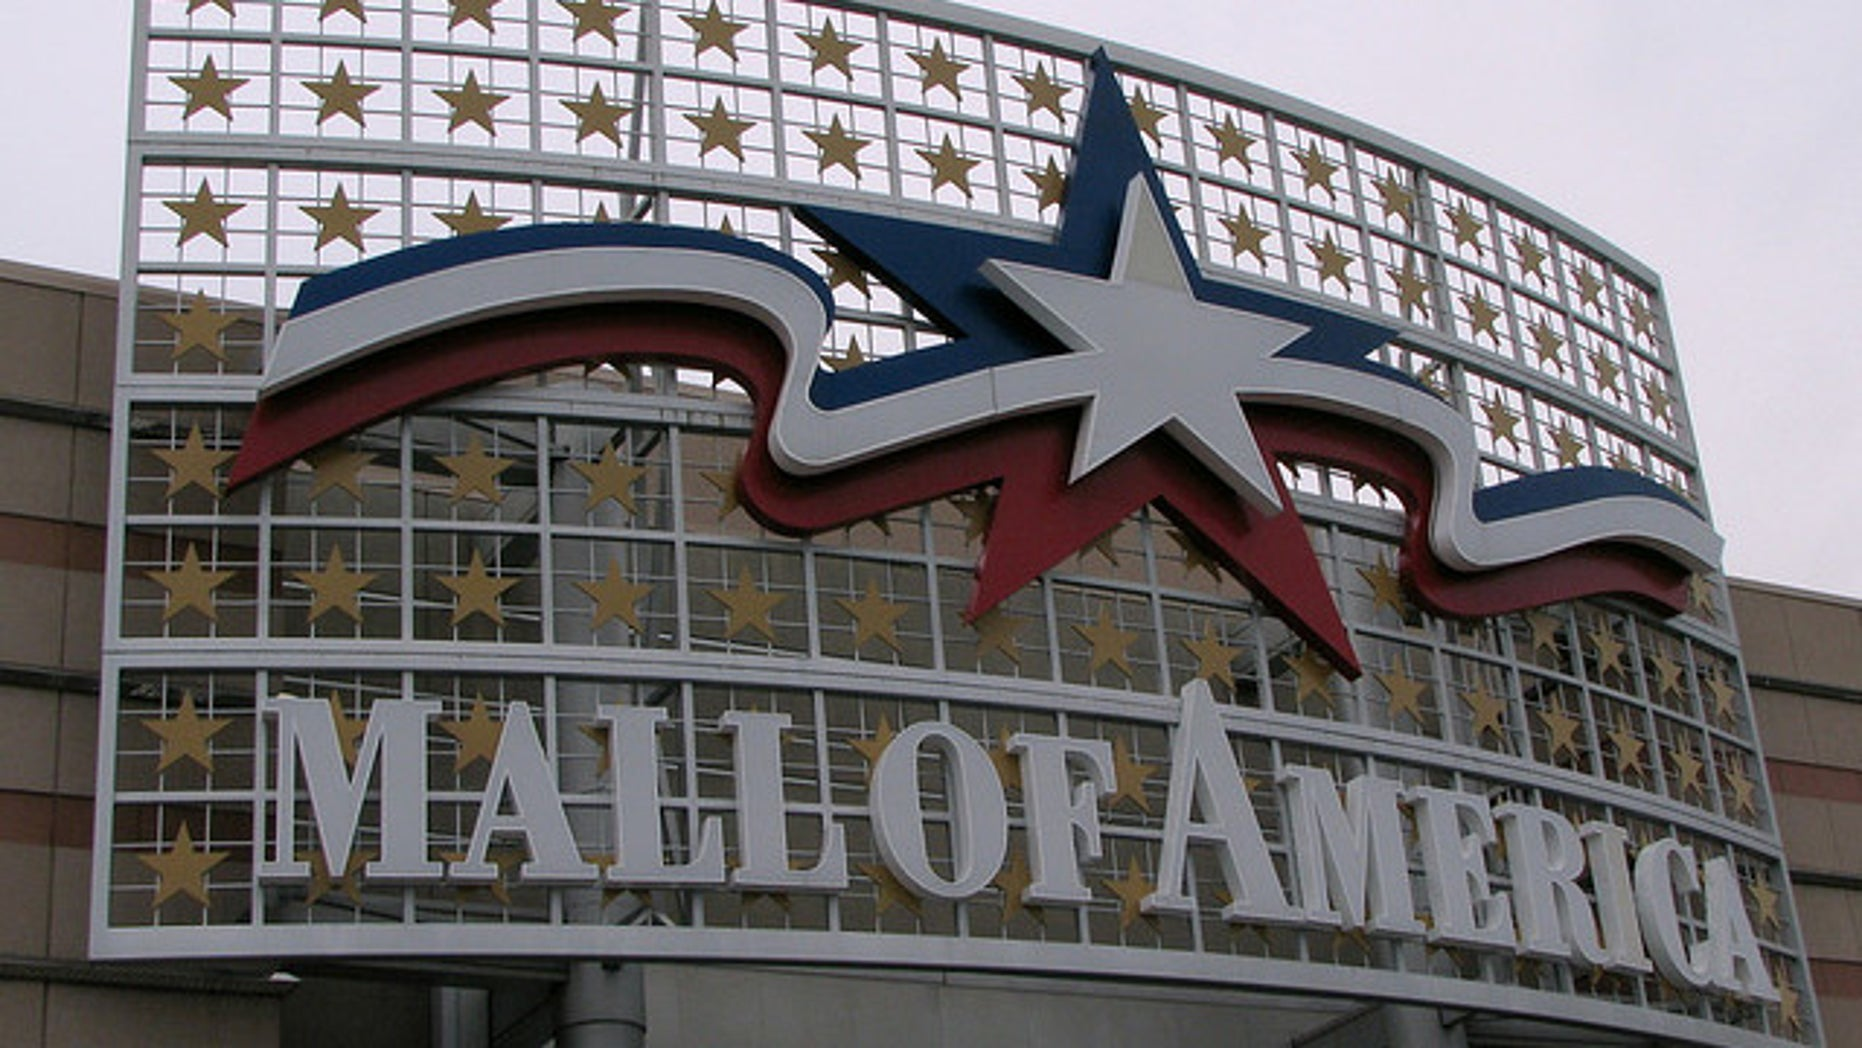 The exterior of the Mall of America in Bloomington, Minn. (MyFoxTwinCities.com)